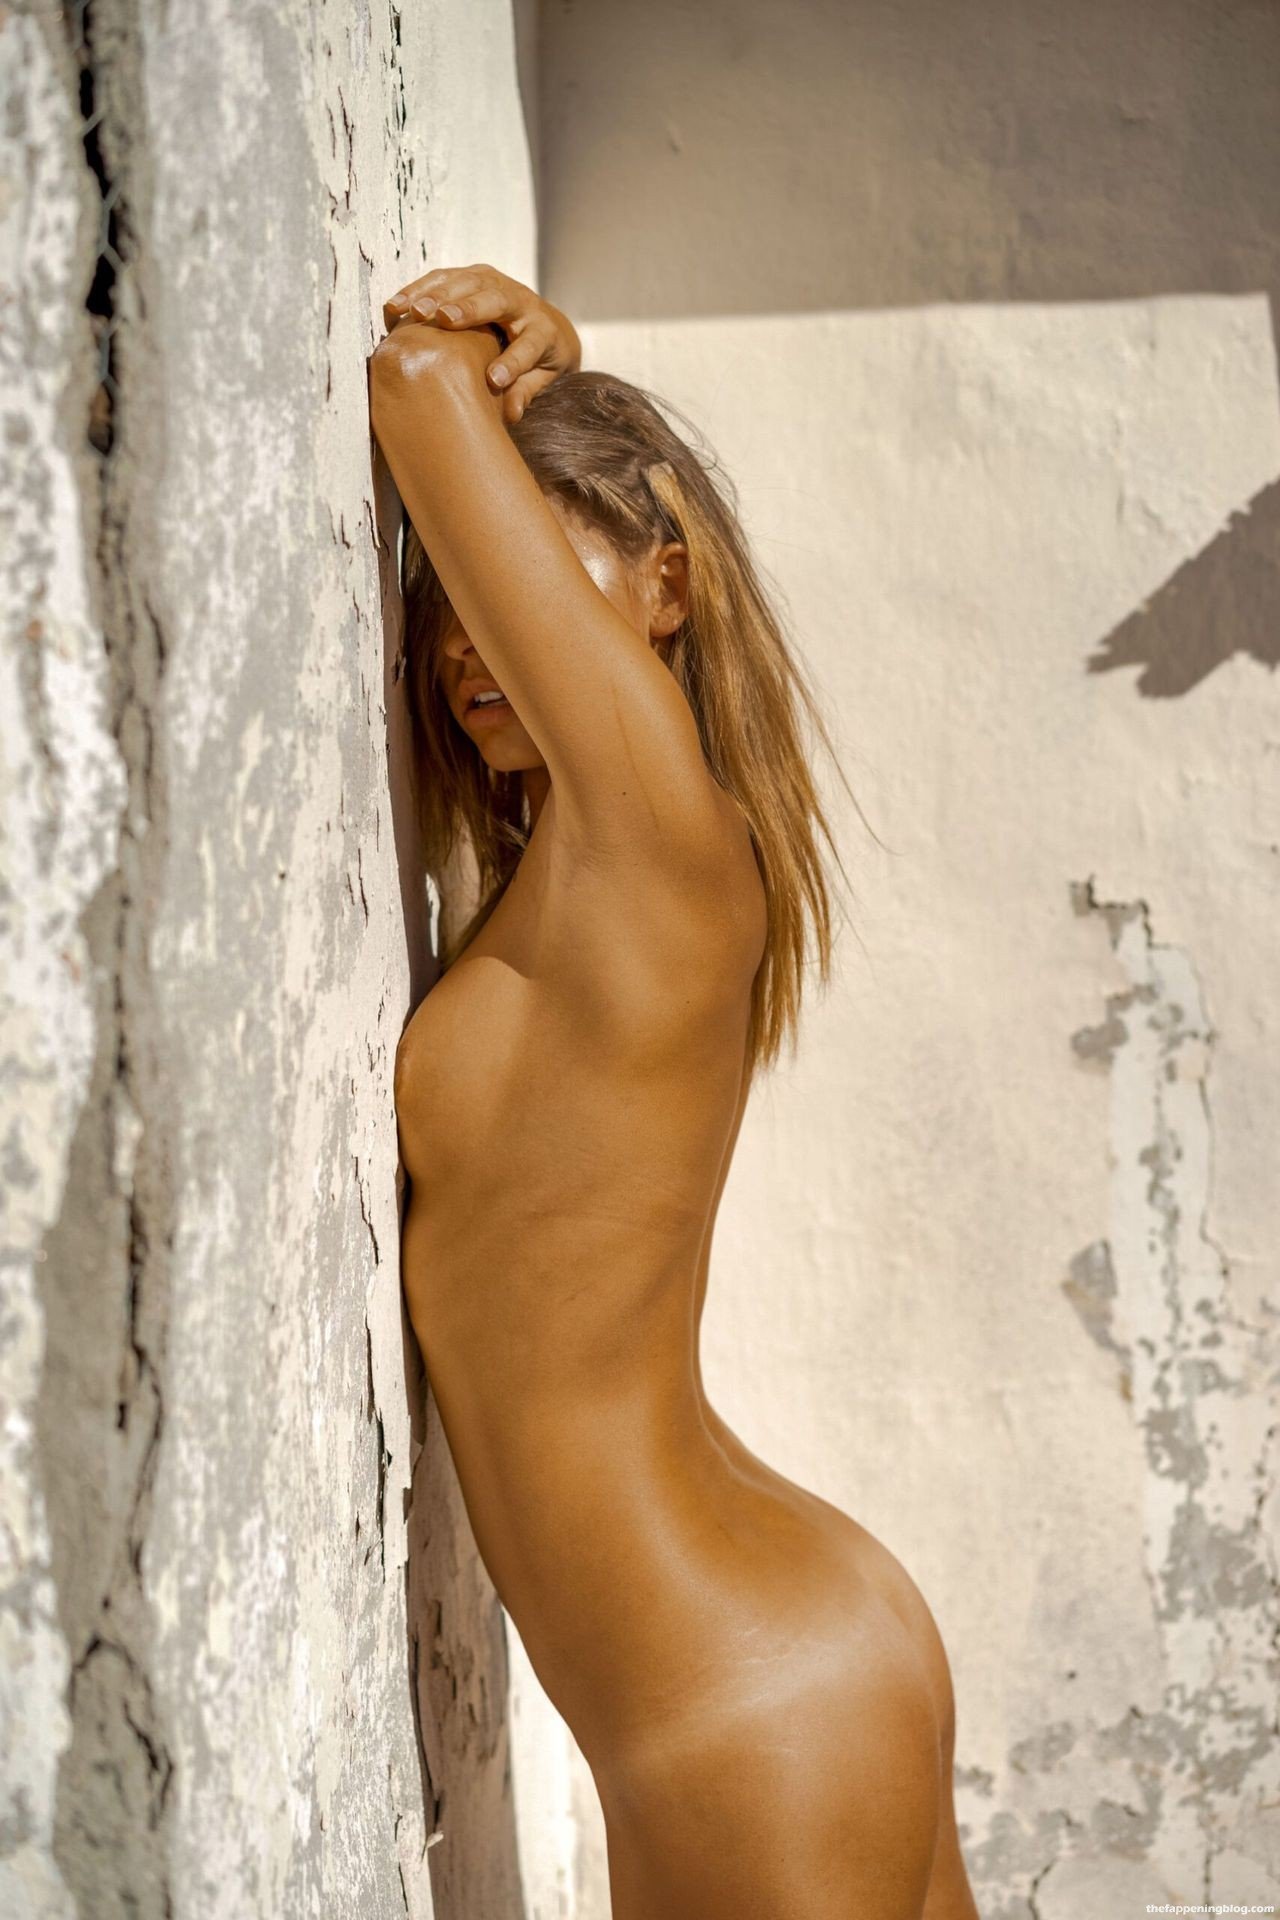 Marisa-Papen-Stunning-Naked-Body-21-scaled1-thefappeningblog.com_.jpg